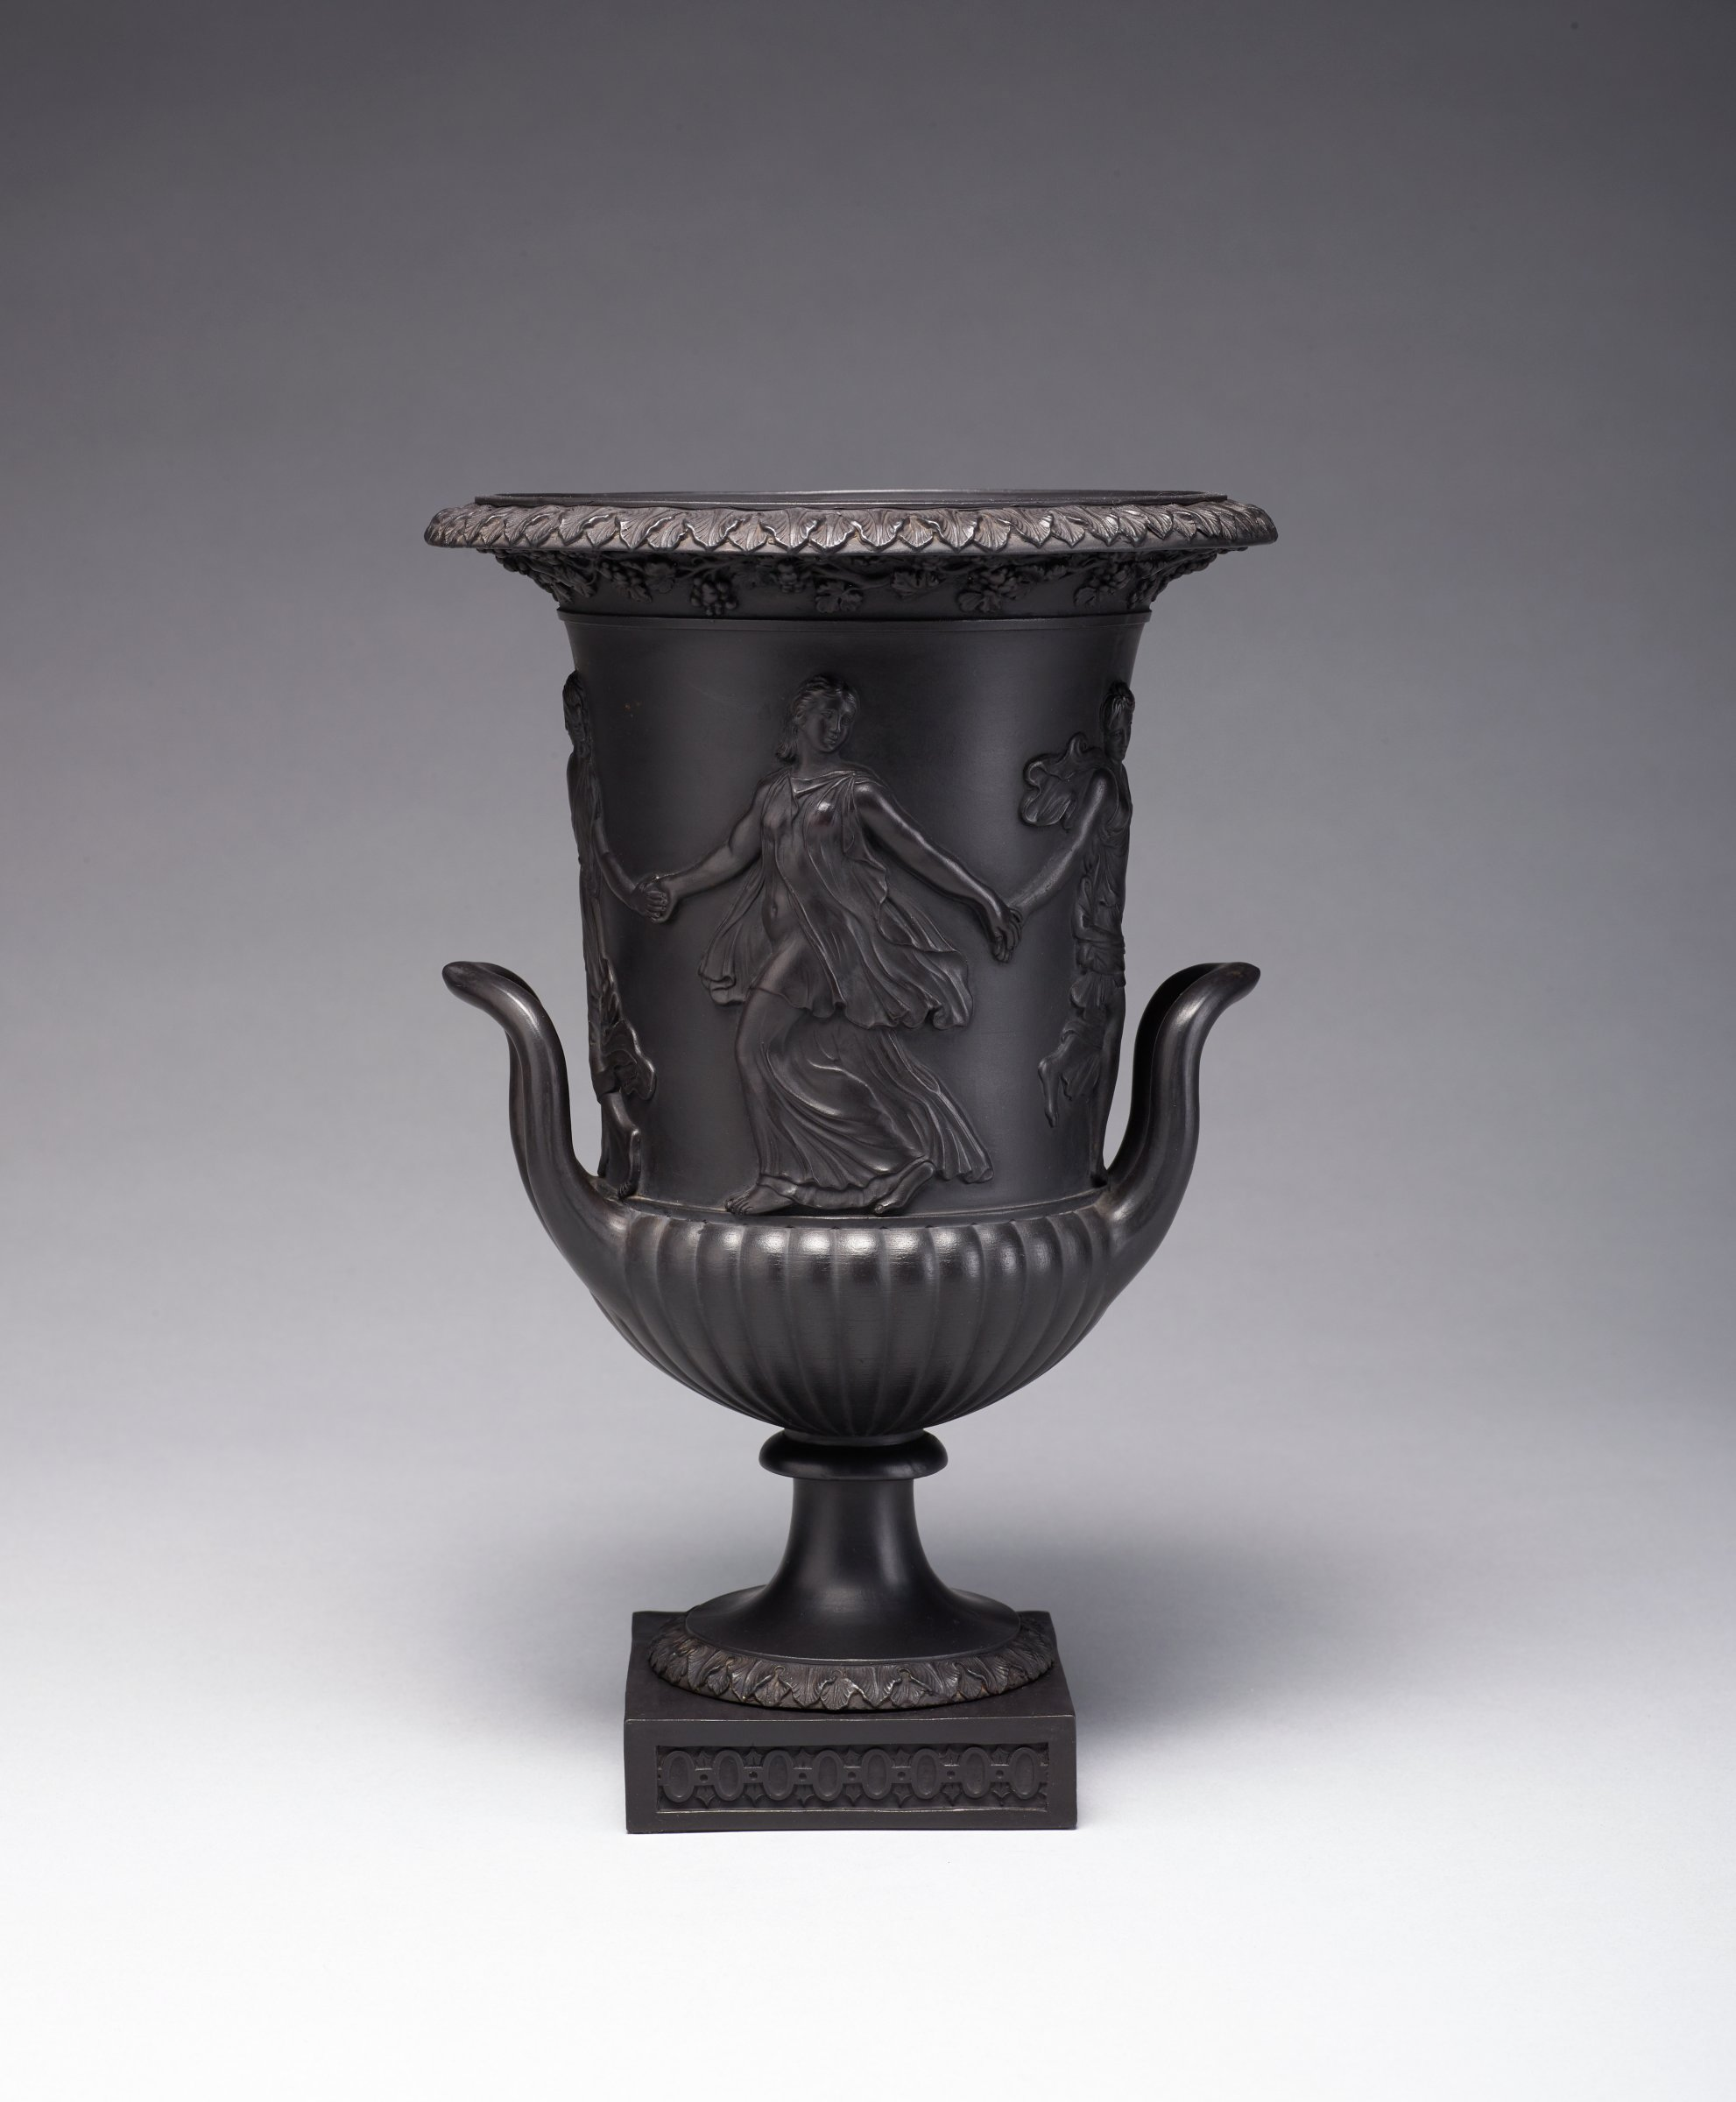 Tall campana urn-shaped vase of black basalt on a small square plinth edged in a molded diaper pattern, the lower body gadrooned, with two short loop handles, the main body with molded relief decoration of the Dancing Hours figures, nude and partially draped, with overlapping leaf motifs around the foot and lip, immediately under the lip is a frieze of grape and grape leaves.